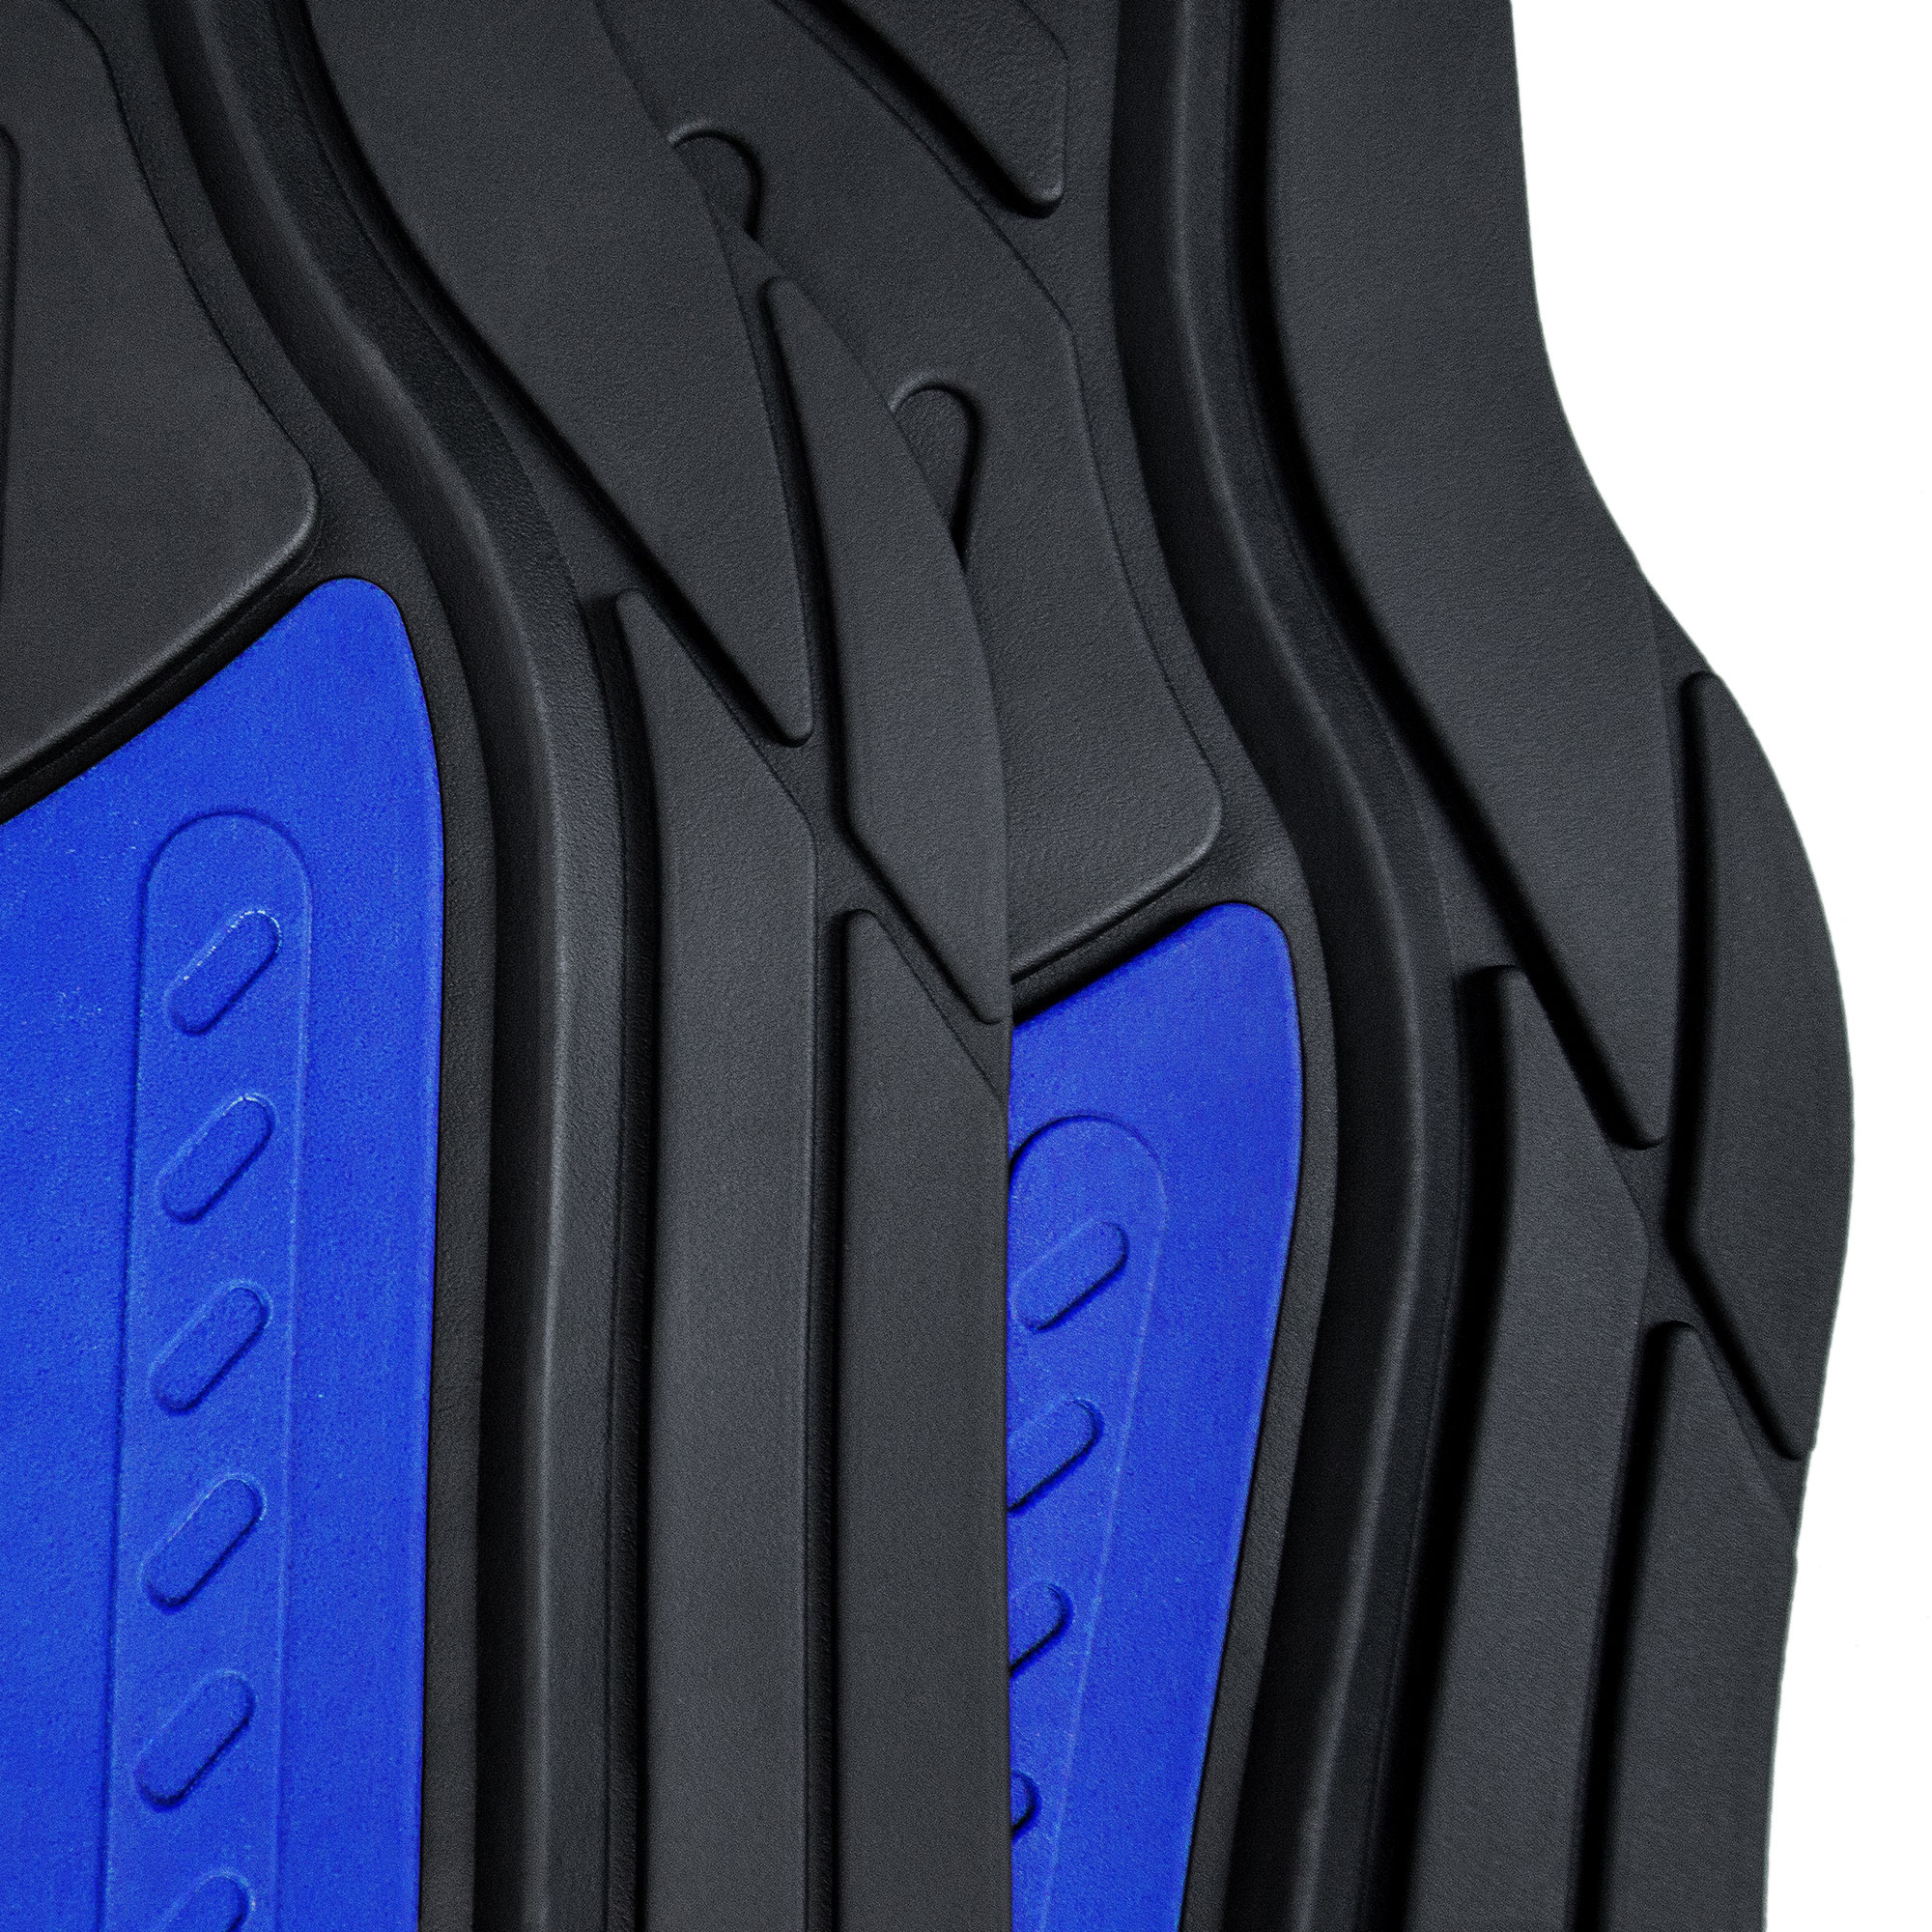 Car-Floor-Mats-for-All-Weather-Rubber-2-Tone-Design-4pc-Set-Heavy-Duty thumbnail 13